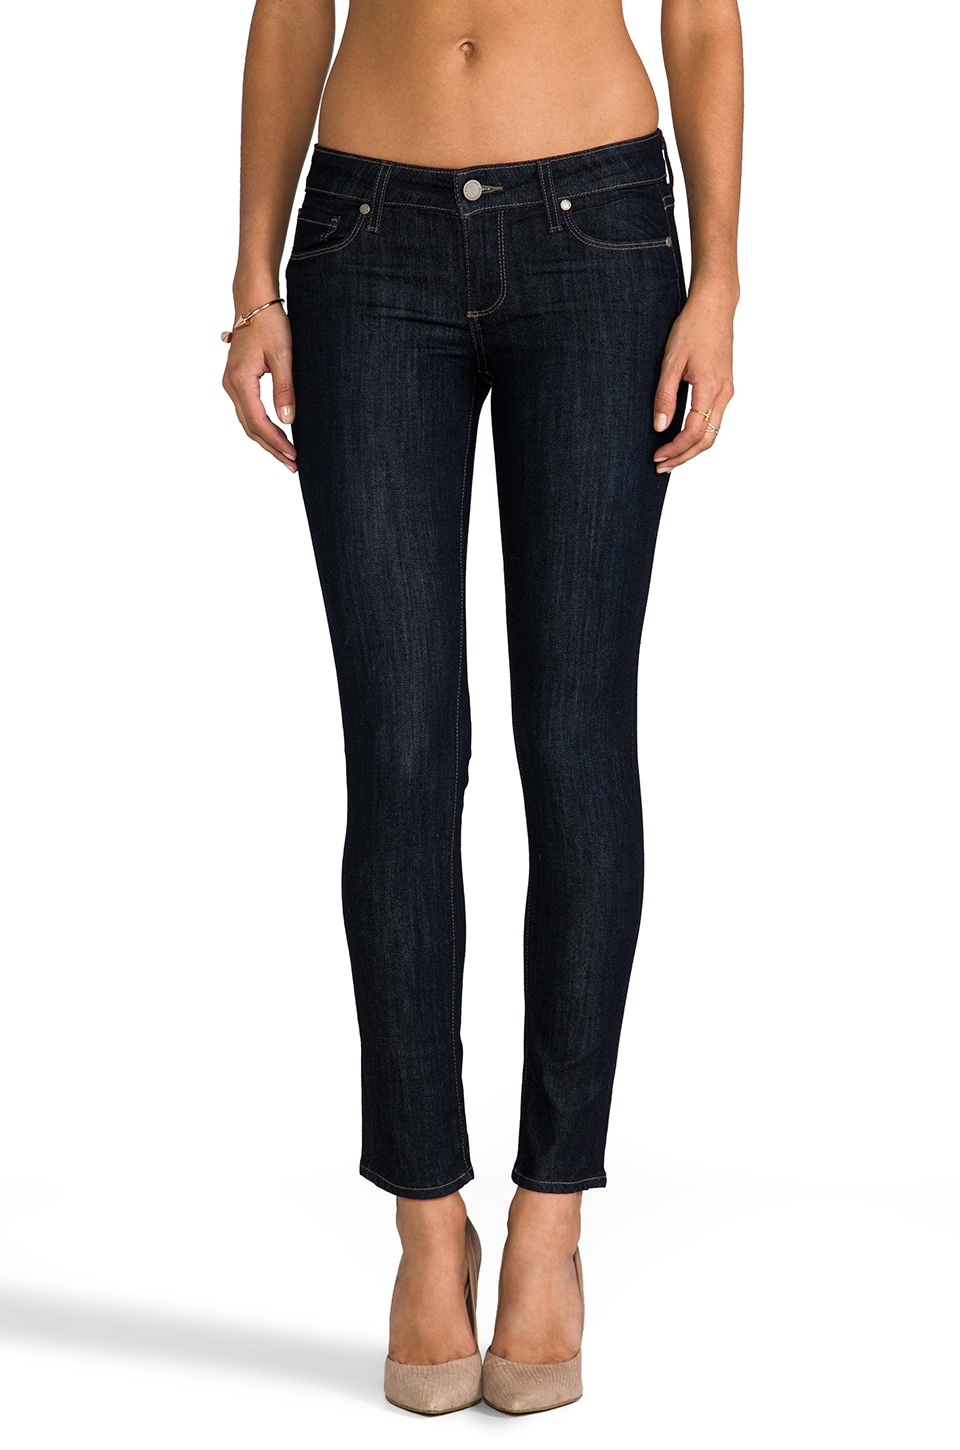 Paige Denim Skyline Ankle Peg in Dream